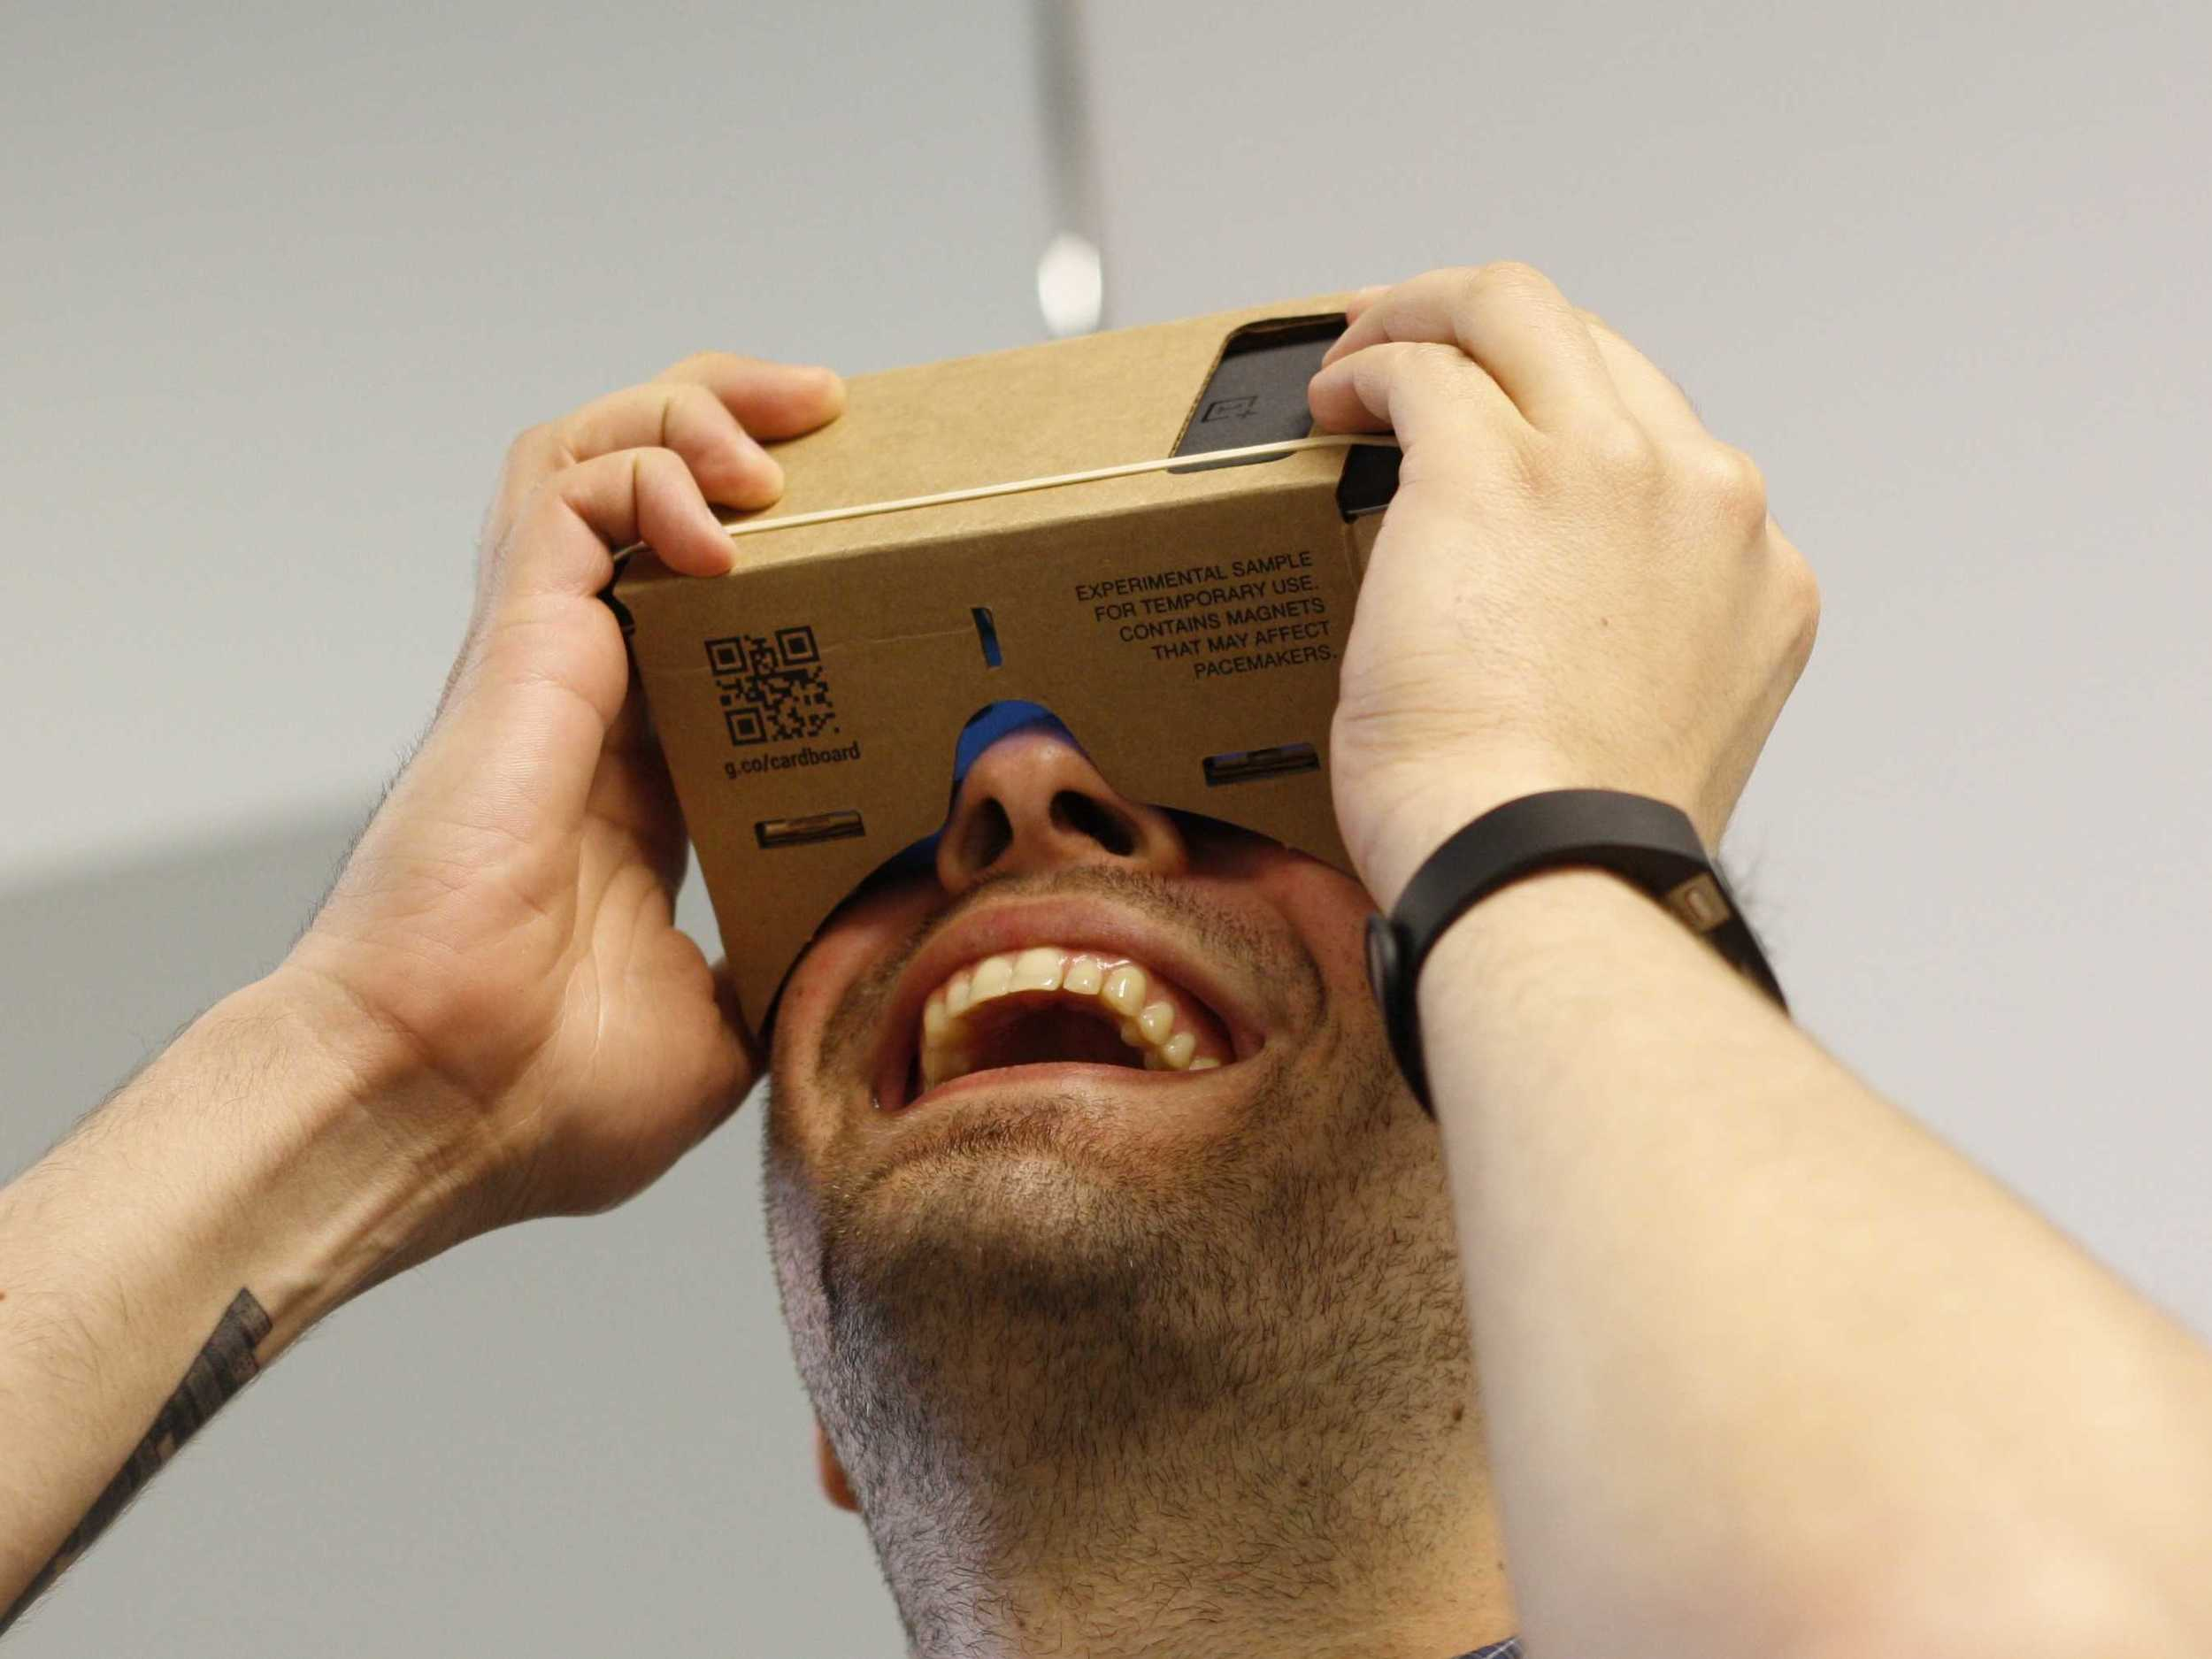 google-figured-out-how-to-turn-any-phone-into-a-virtual-reality-headset-for-next-to-nothing.jpg